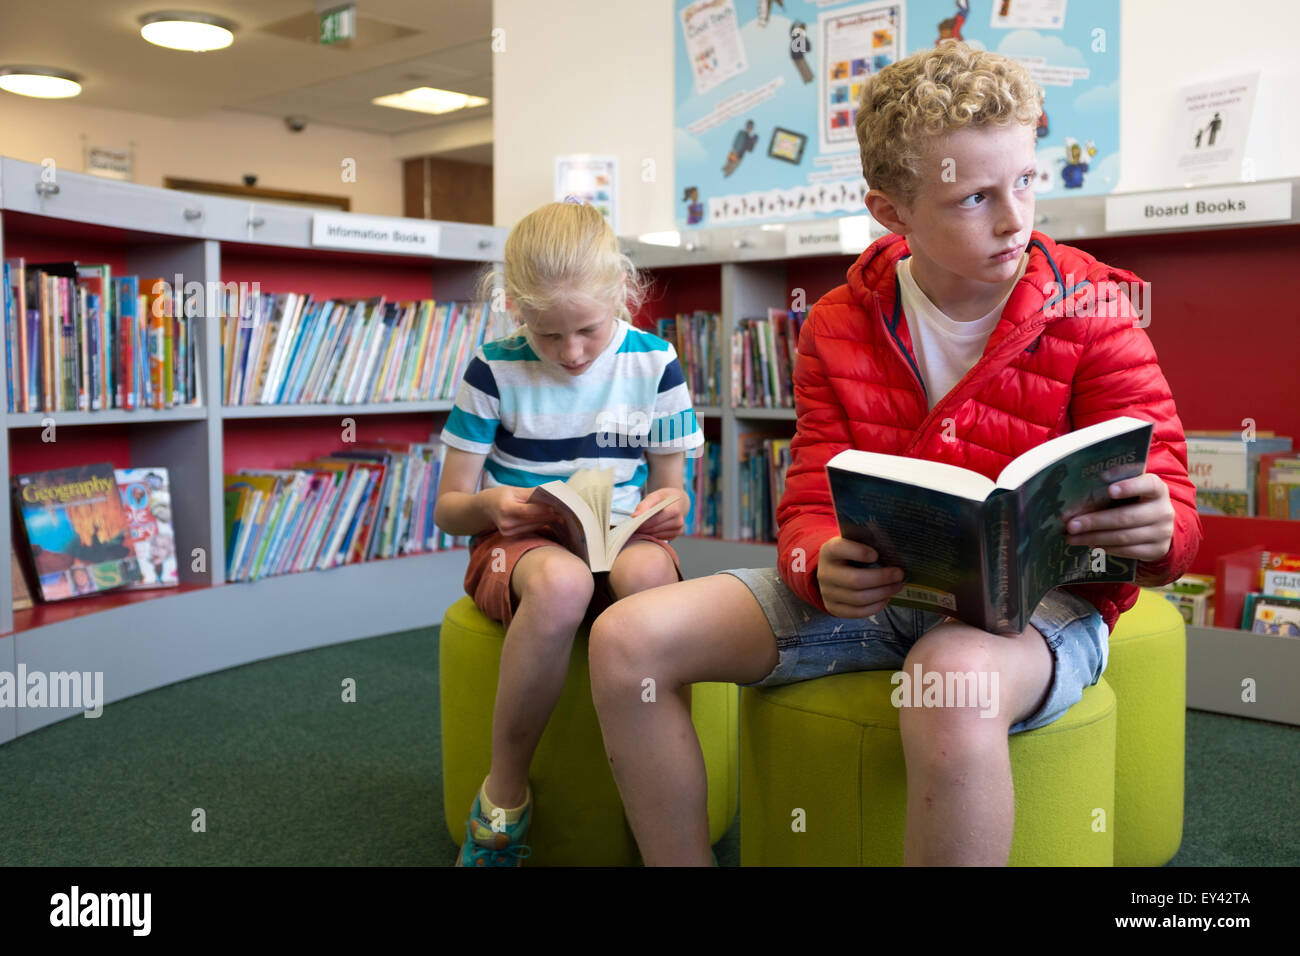 Yong boy and girl reading in the children's section of a public library - Stock Image